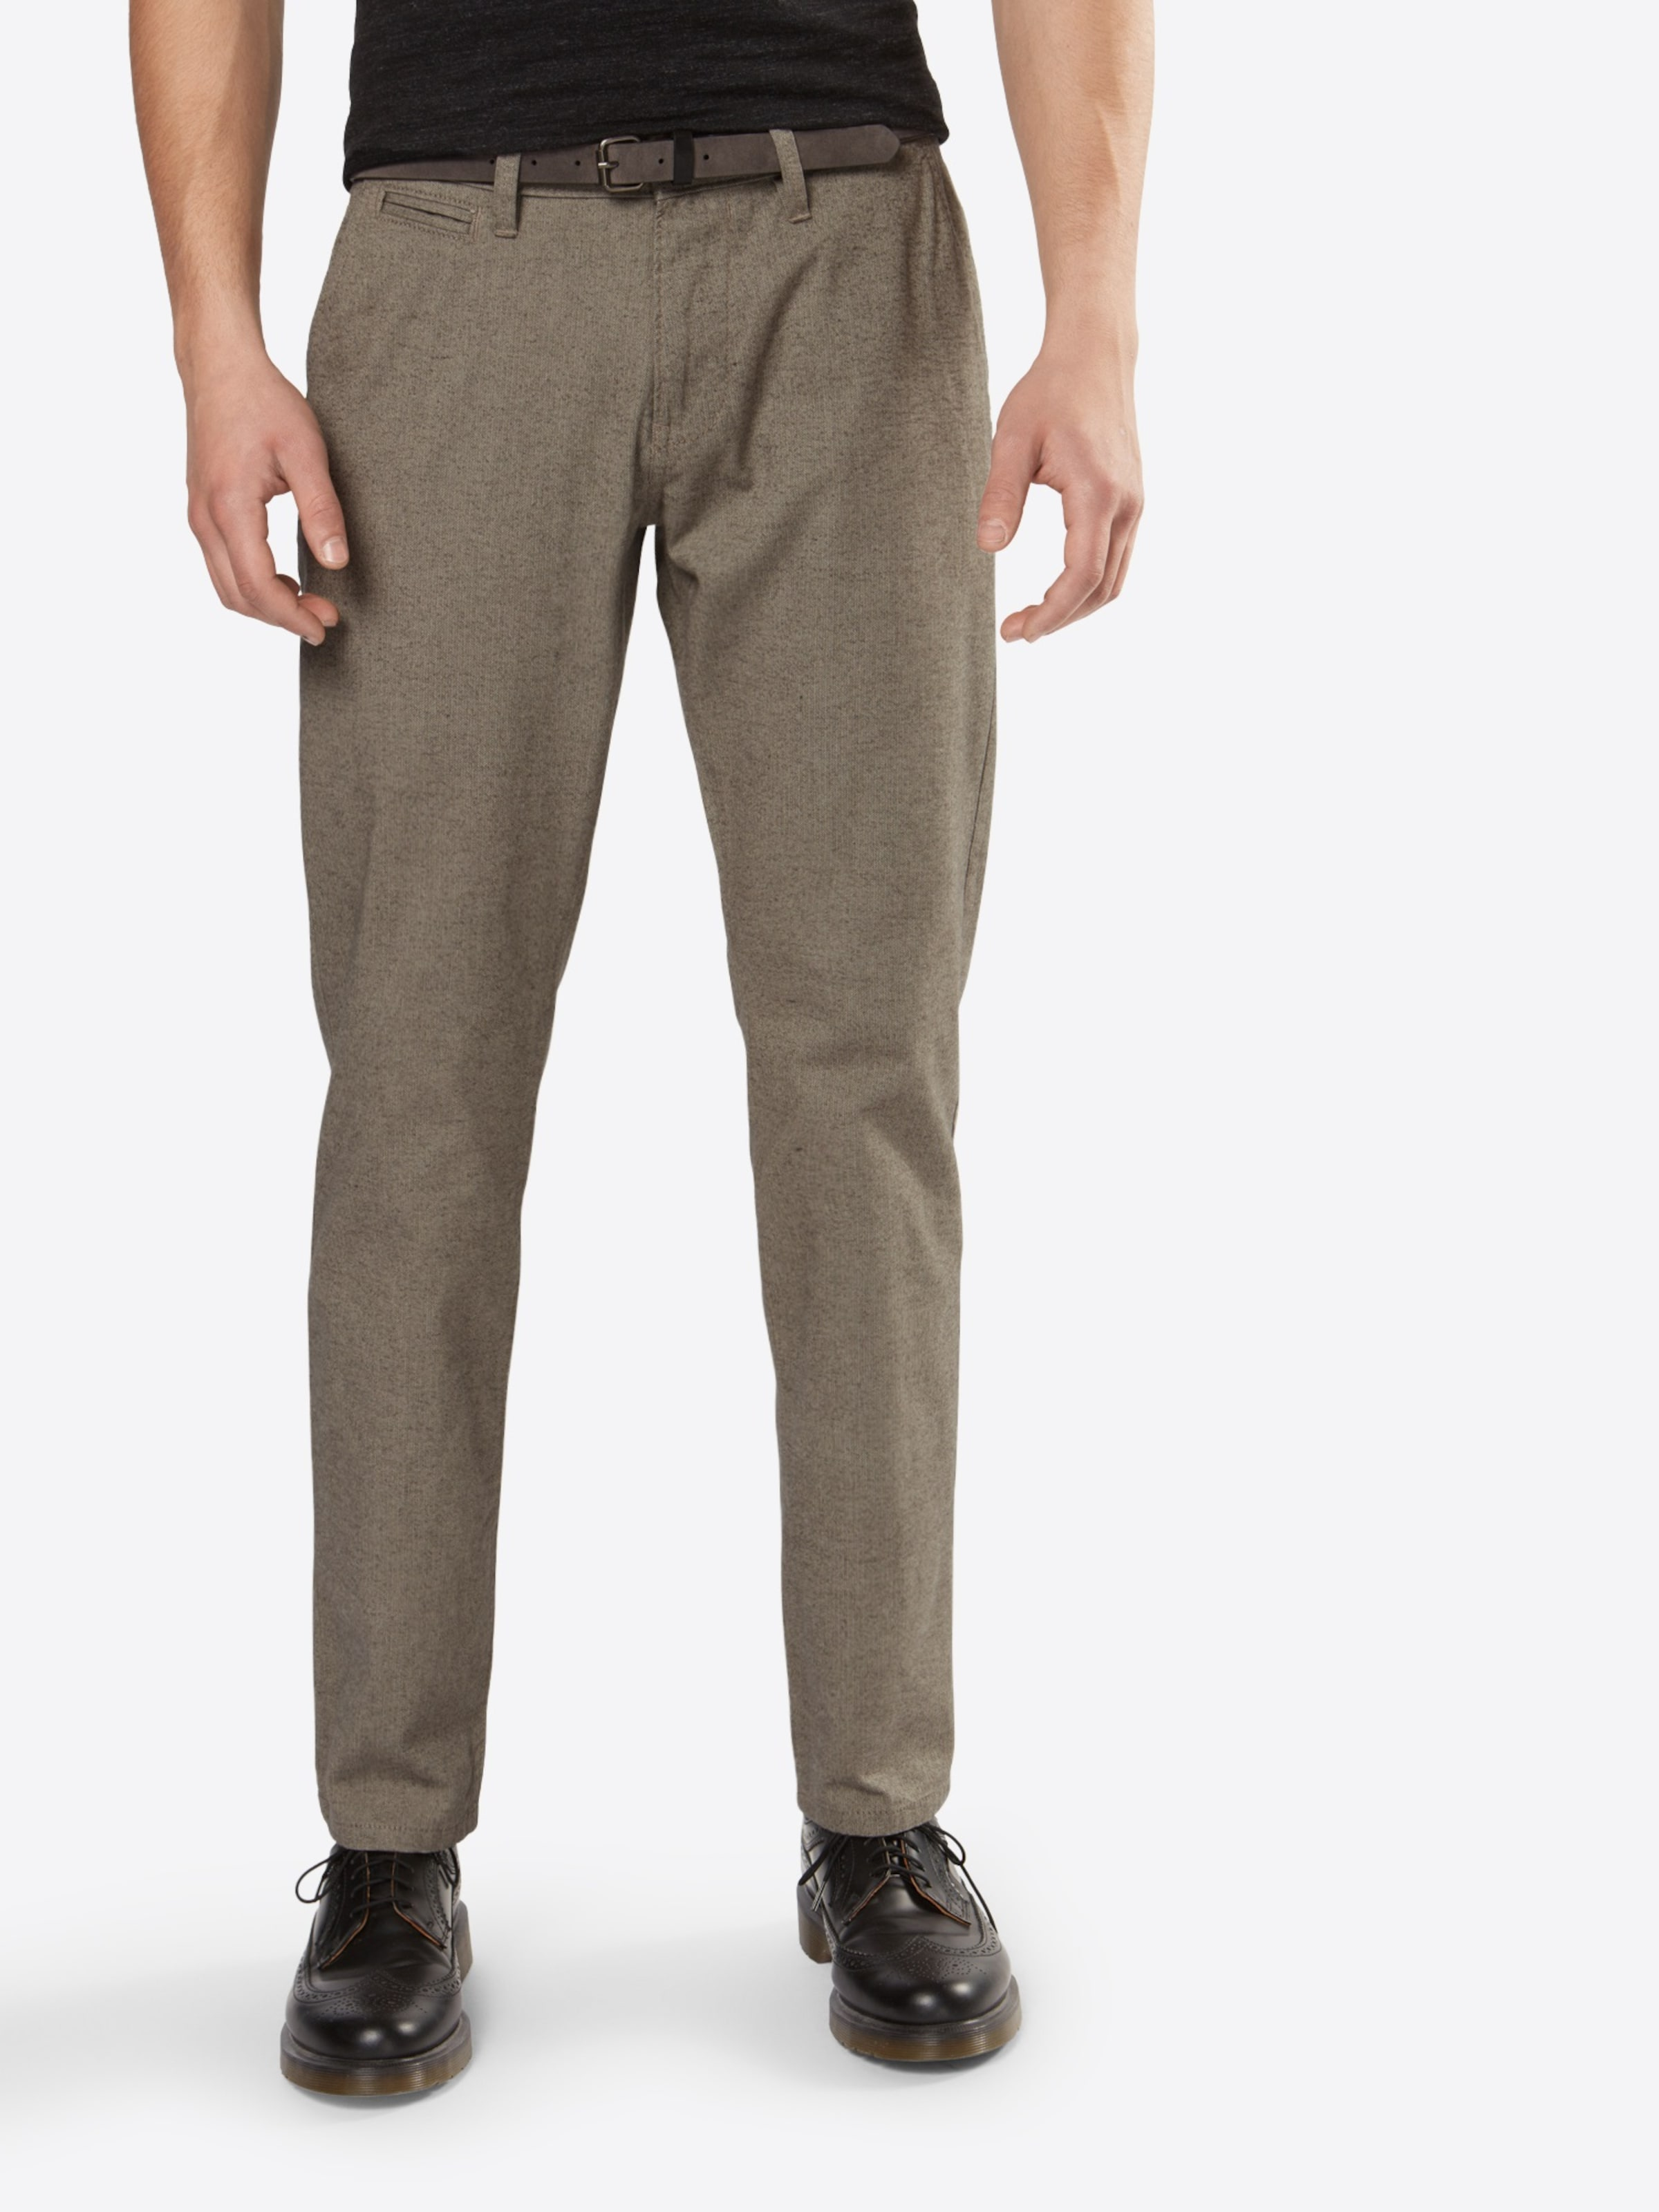 Chino Tailor Noisette En Tom Pantalon 'travis' Ifmb7Y6gyv